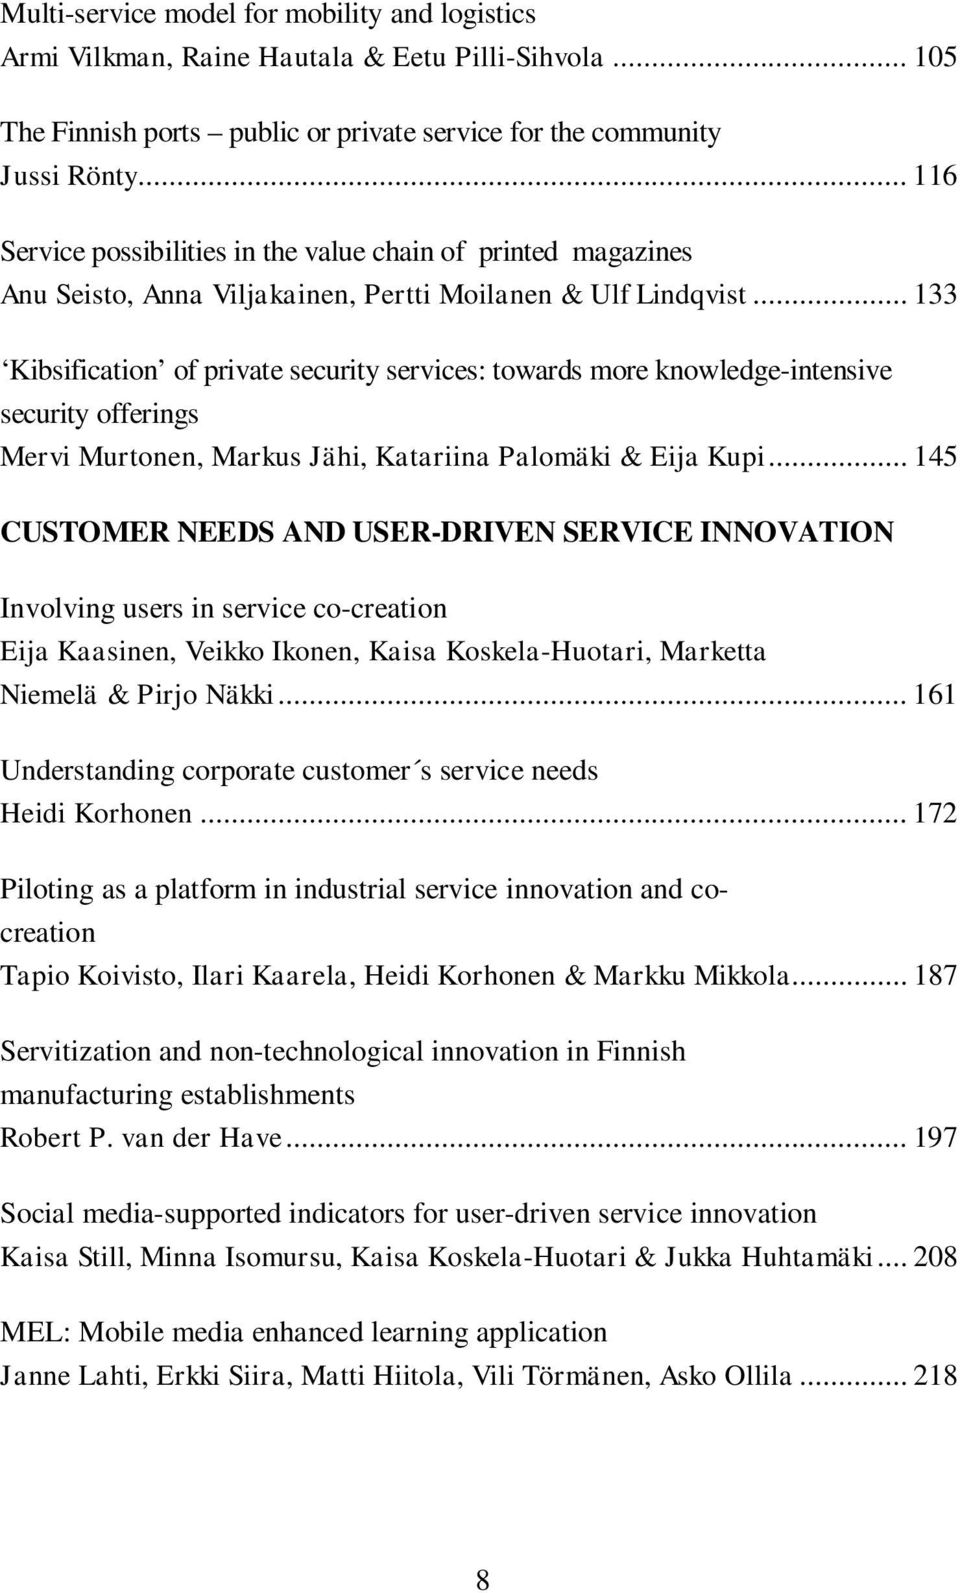 .. 133 Kibsification of private security services: towards more knowledge-intensive security offerings Mervi Murtonen, Markus Jähi, Katariina Palomäki & Eija Kupi.